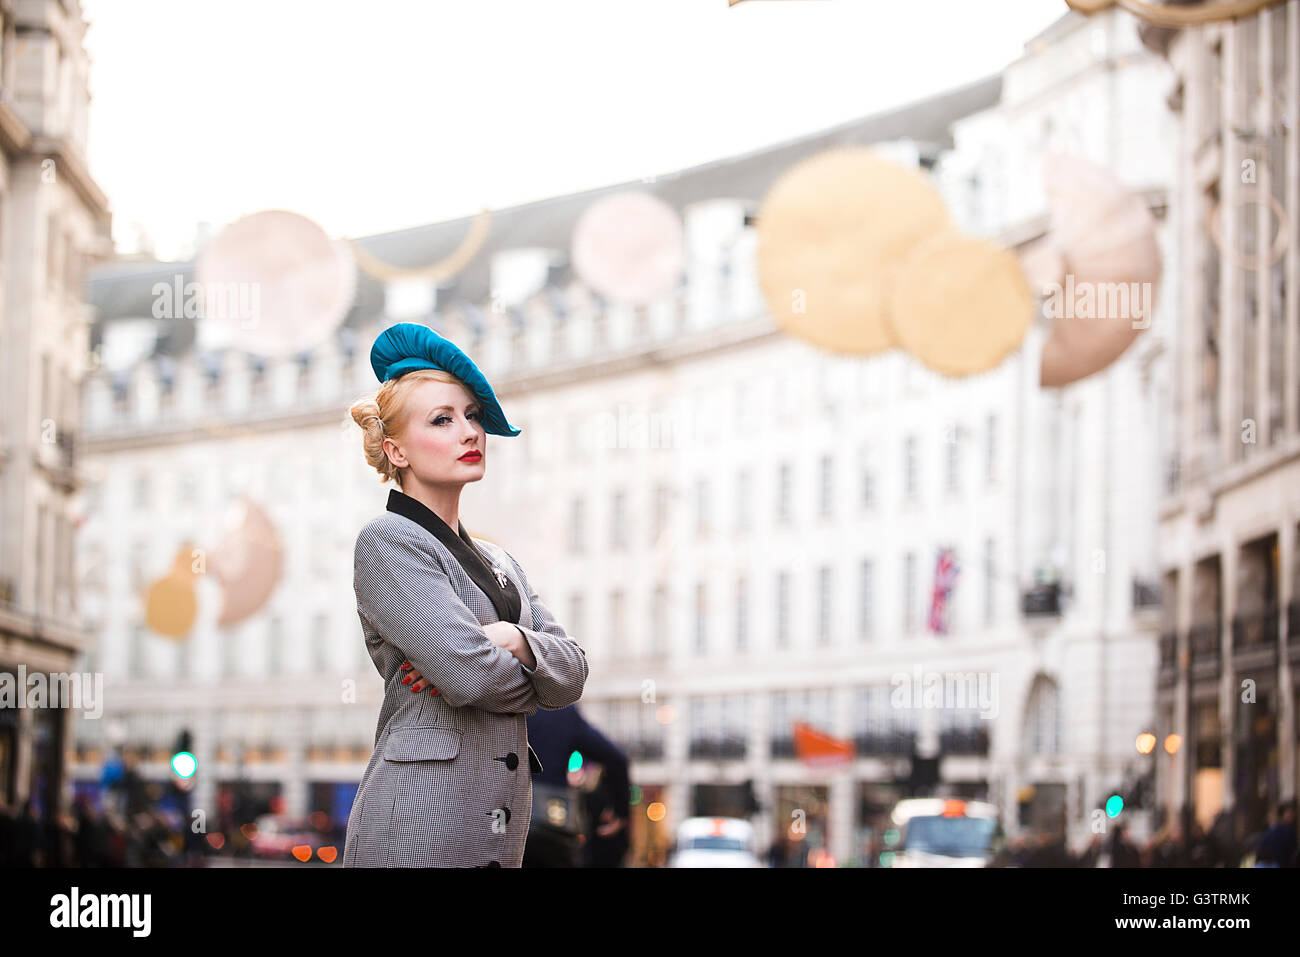 A stylish young woman dressed in 1930s style clothing waiting for a taxi on Regent Street in London. - Stock Image